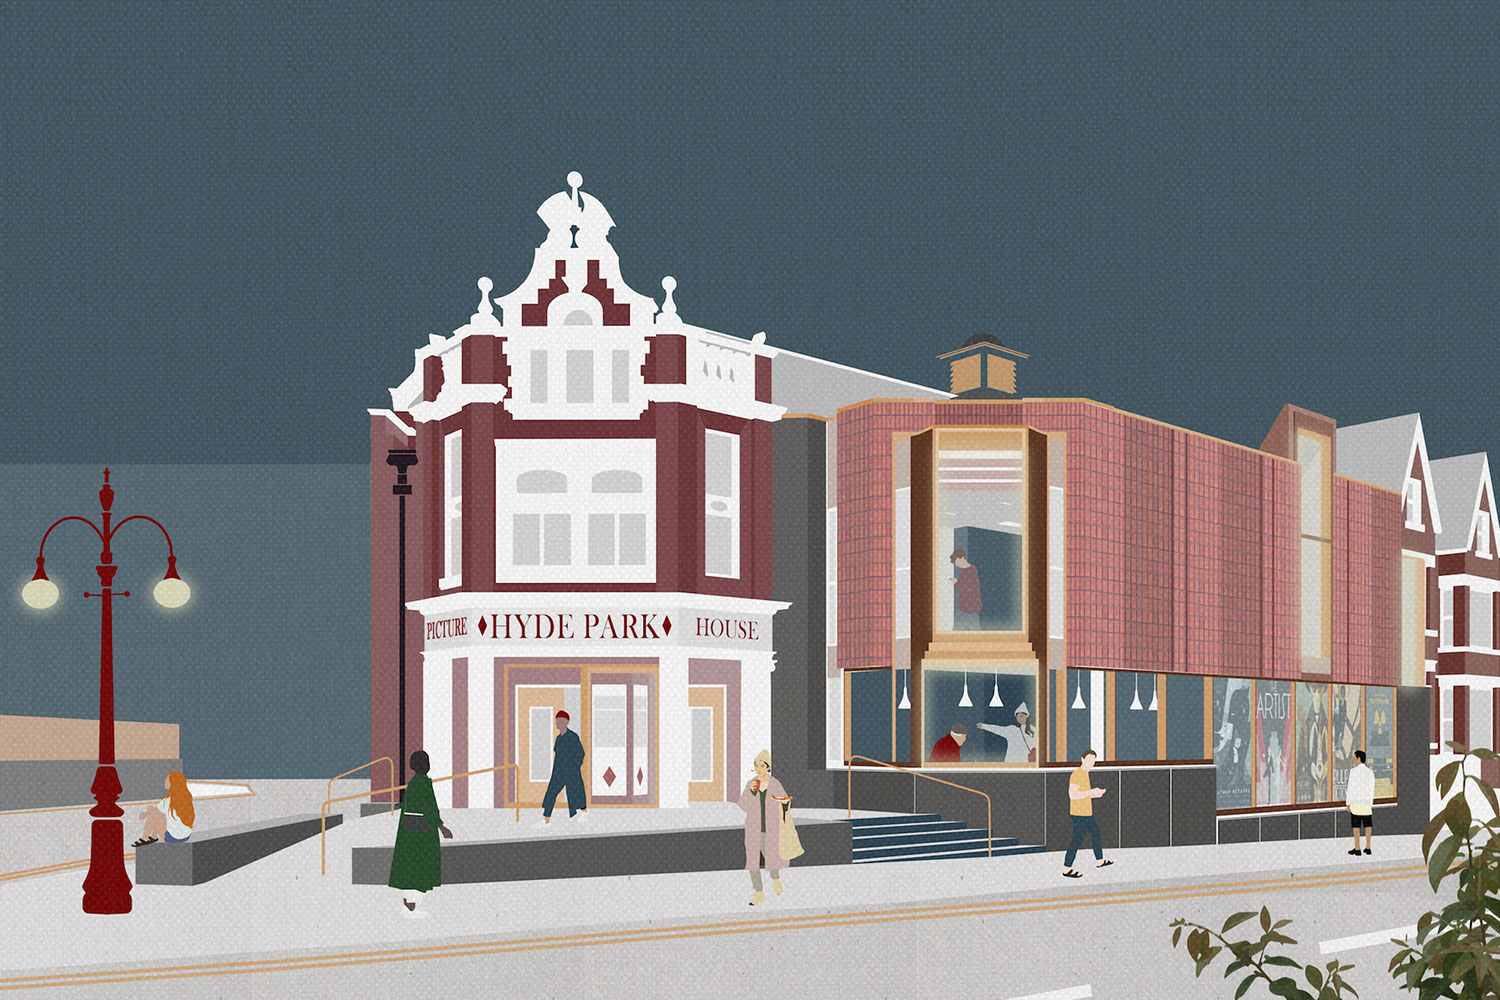 hyde park picture house redevelopment project leeds HPPH burohappold